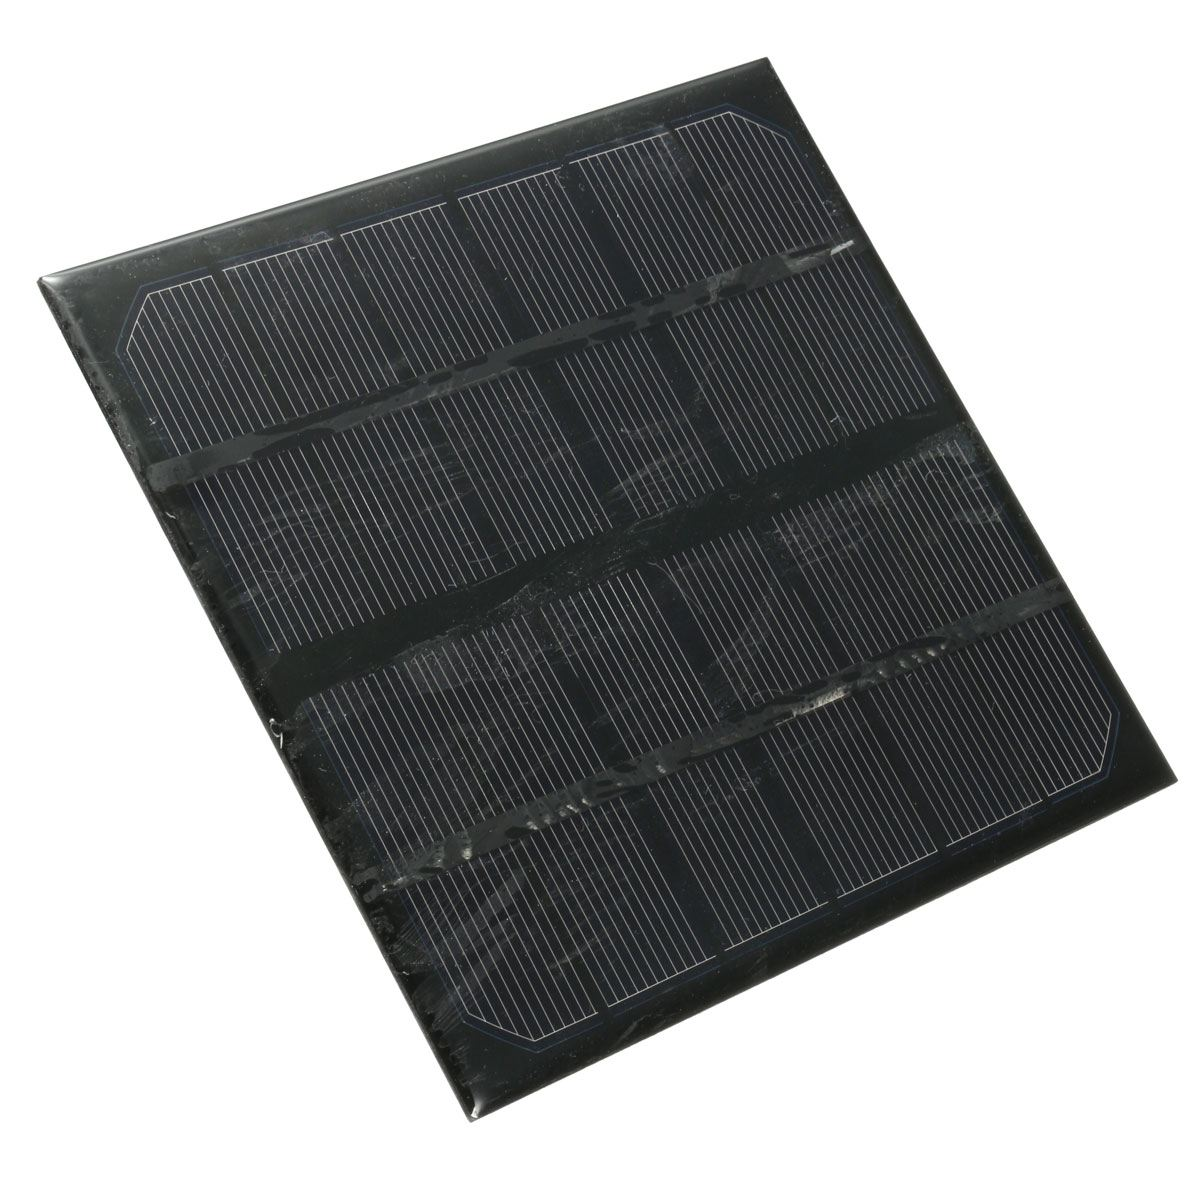 KINCO 3W 6V Solar Panel Monocrystalline Silicon DIY Battery Charger MINI 145*145*3mm Solar Cell For System Supply